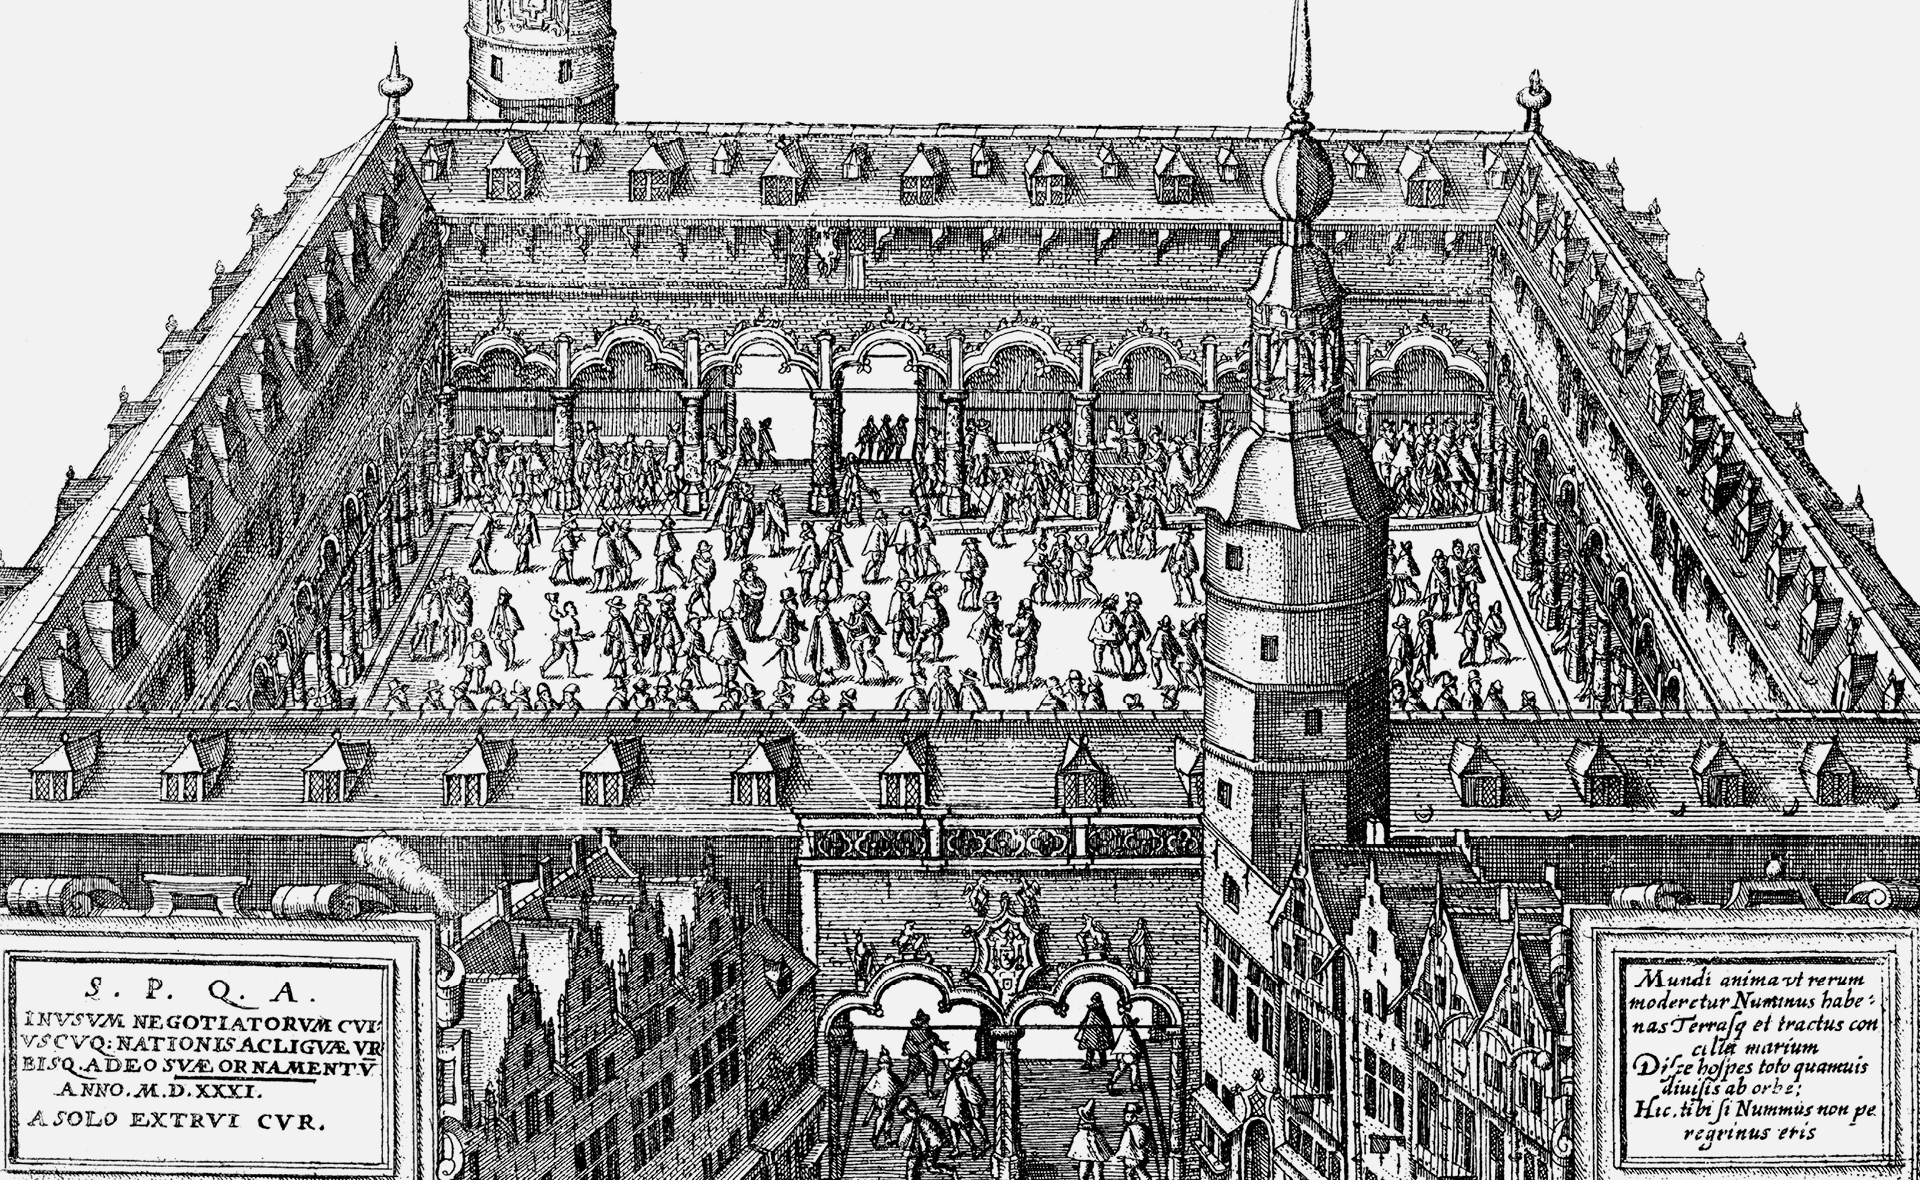 An illustration of the trade exchange in 16th century Antwerp, Belgium, which inspired Gresham to create The Royal Exchange